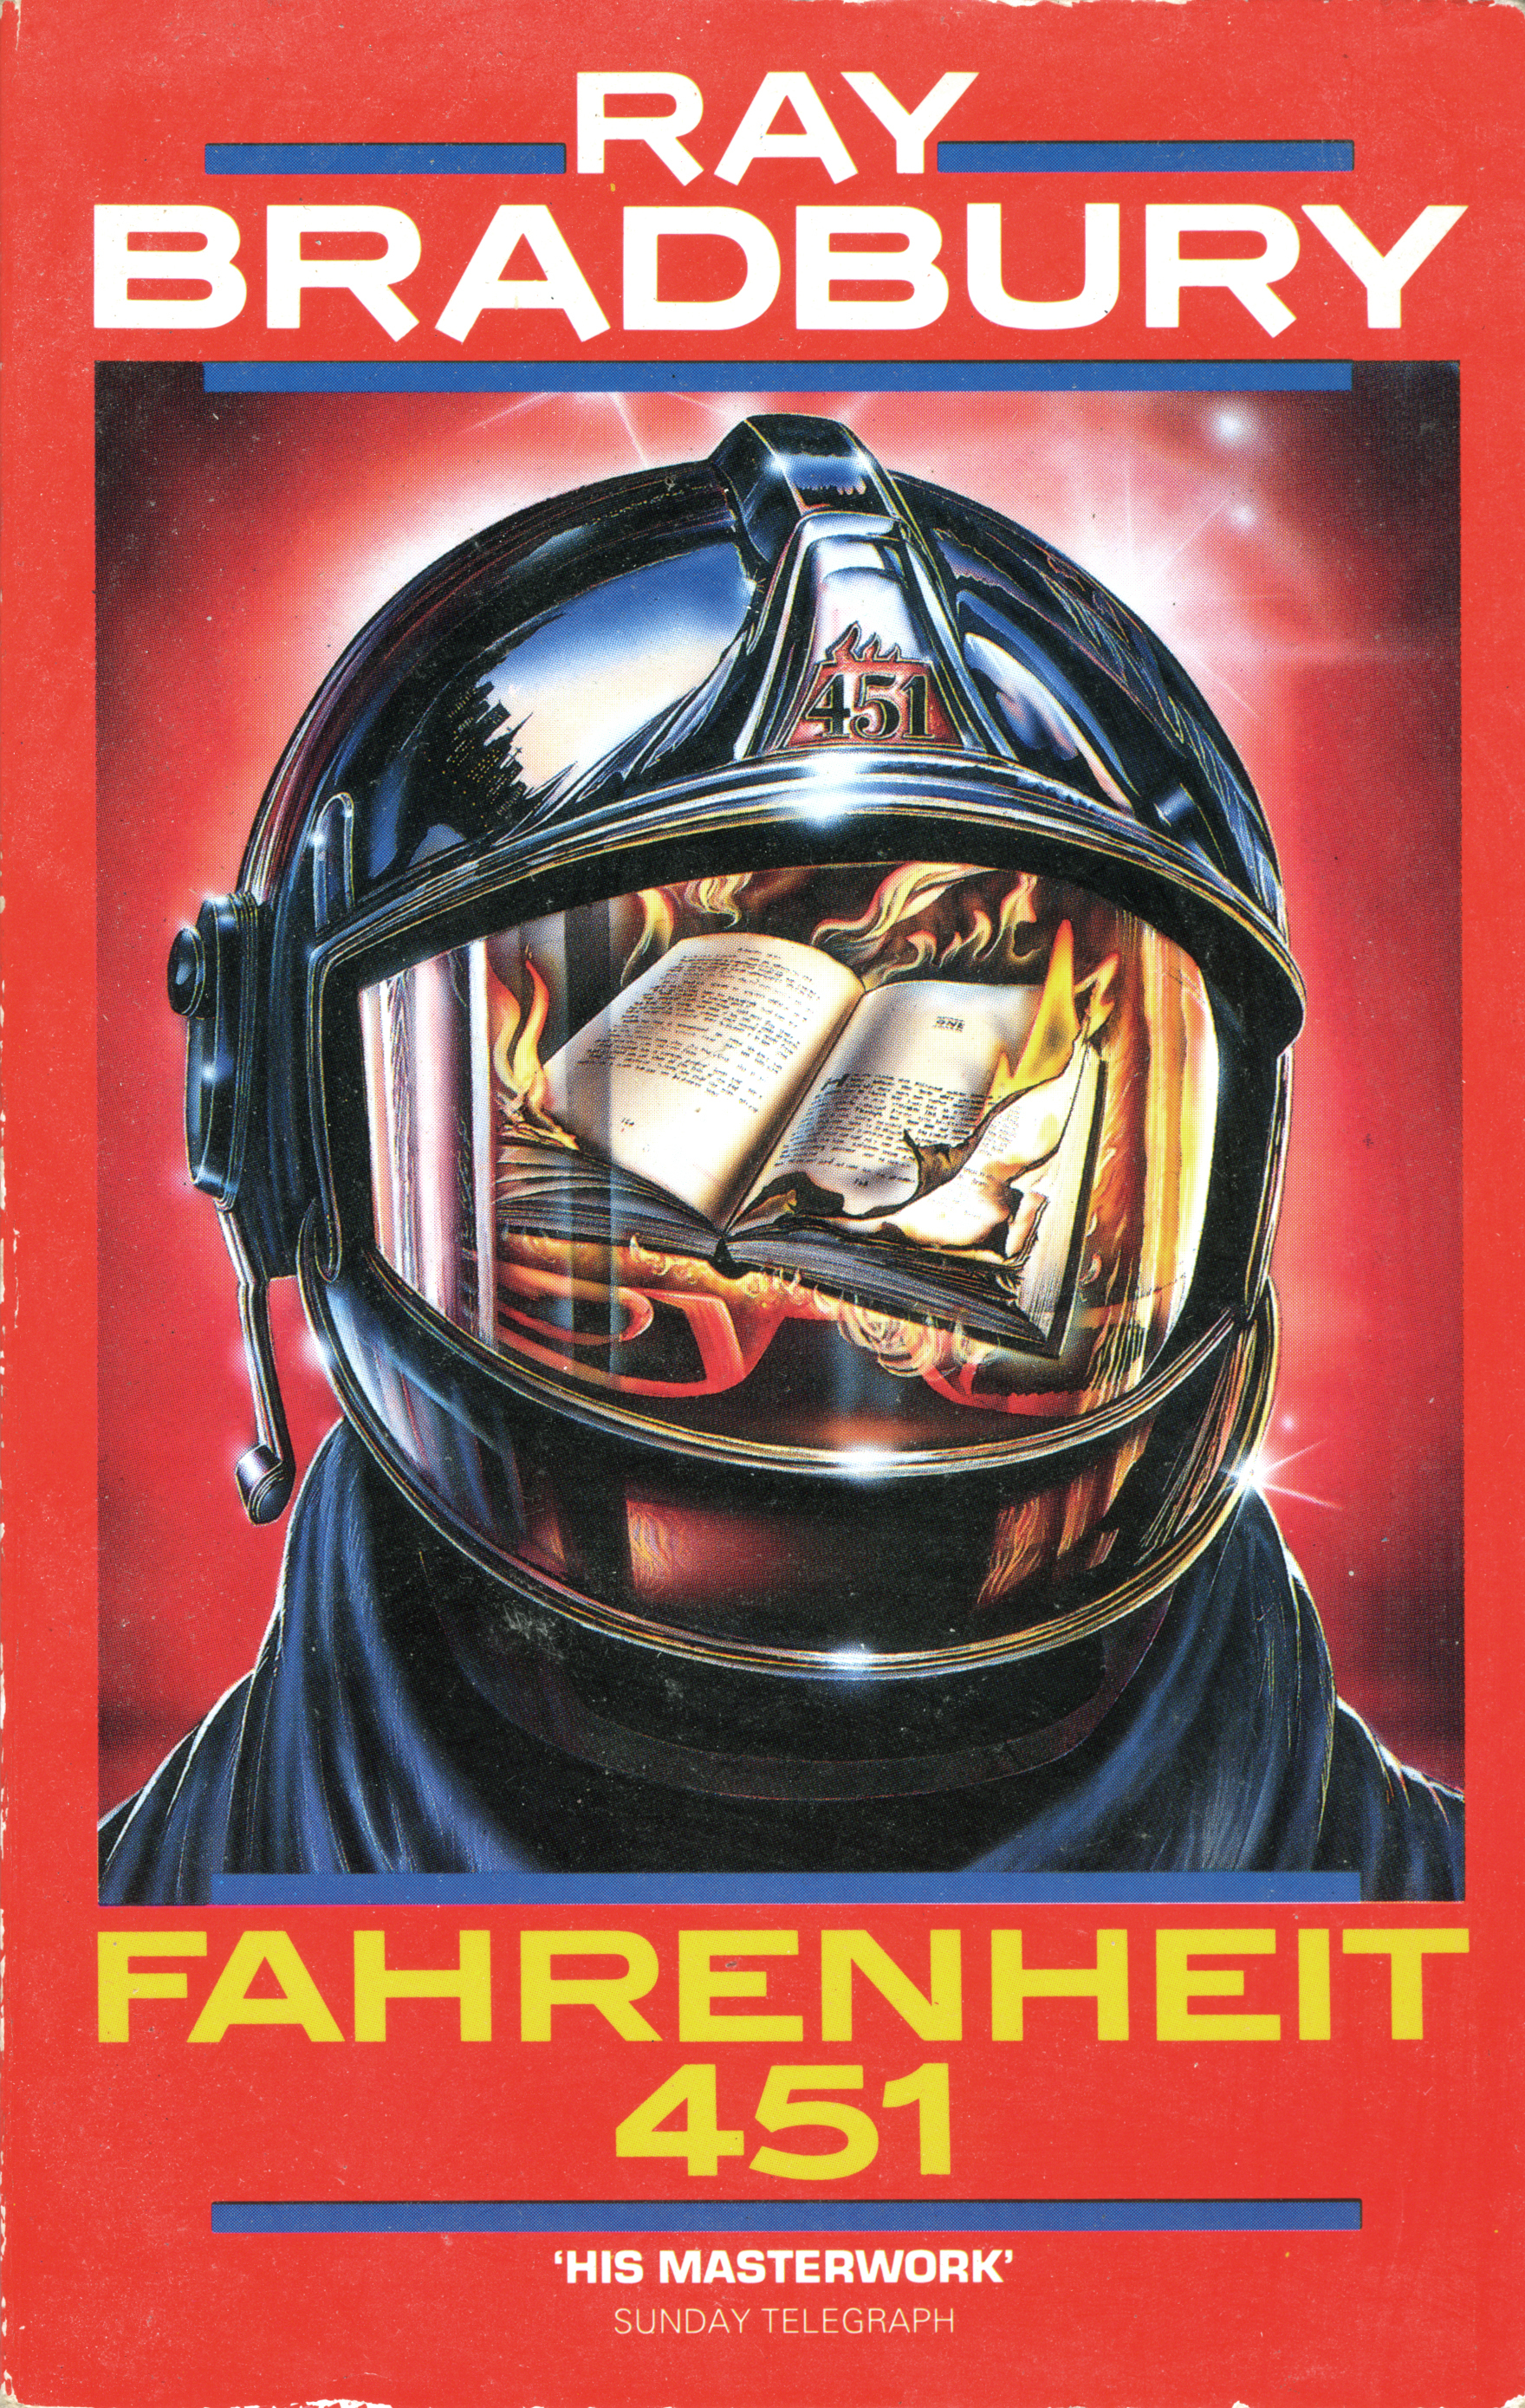 fire helmet Books science HD Wallpaper